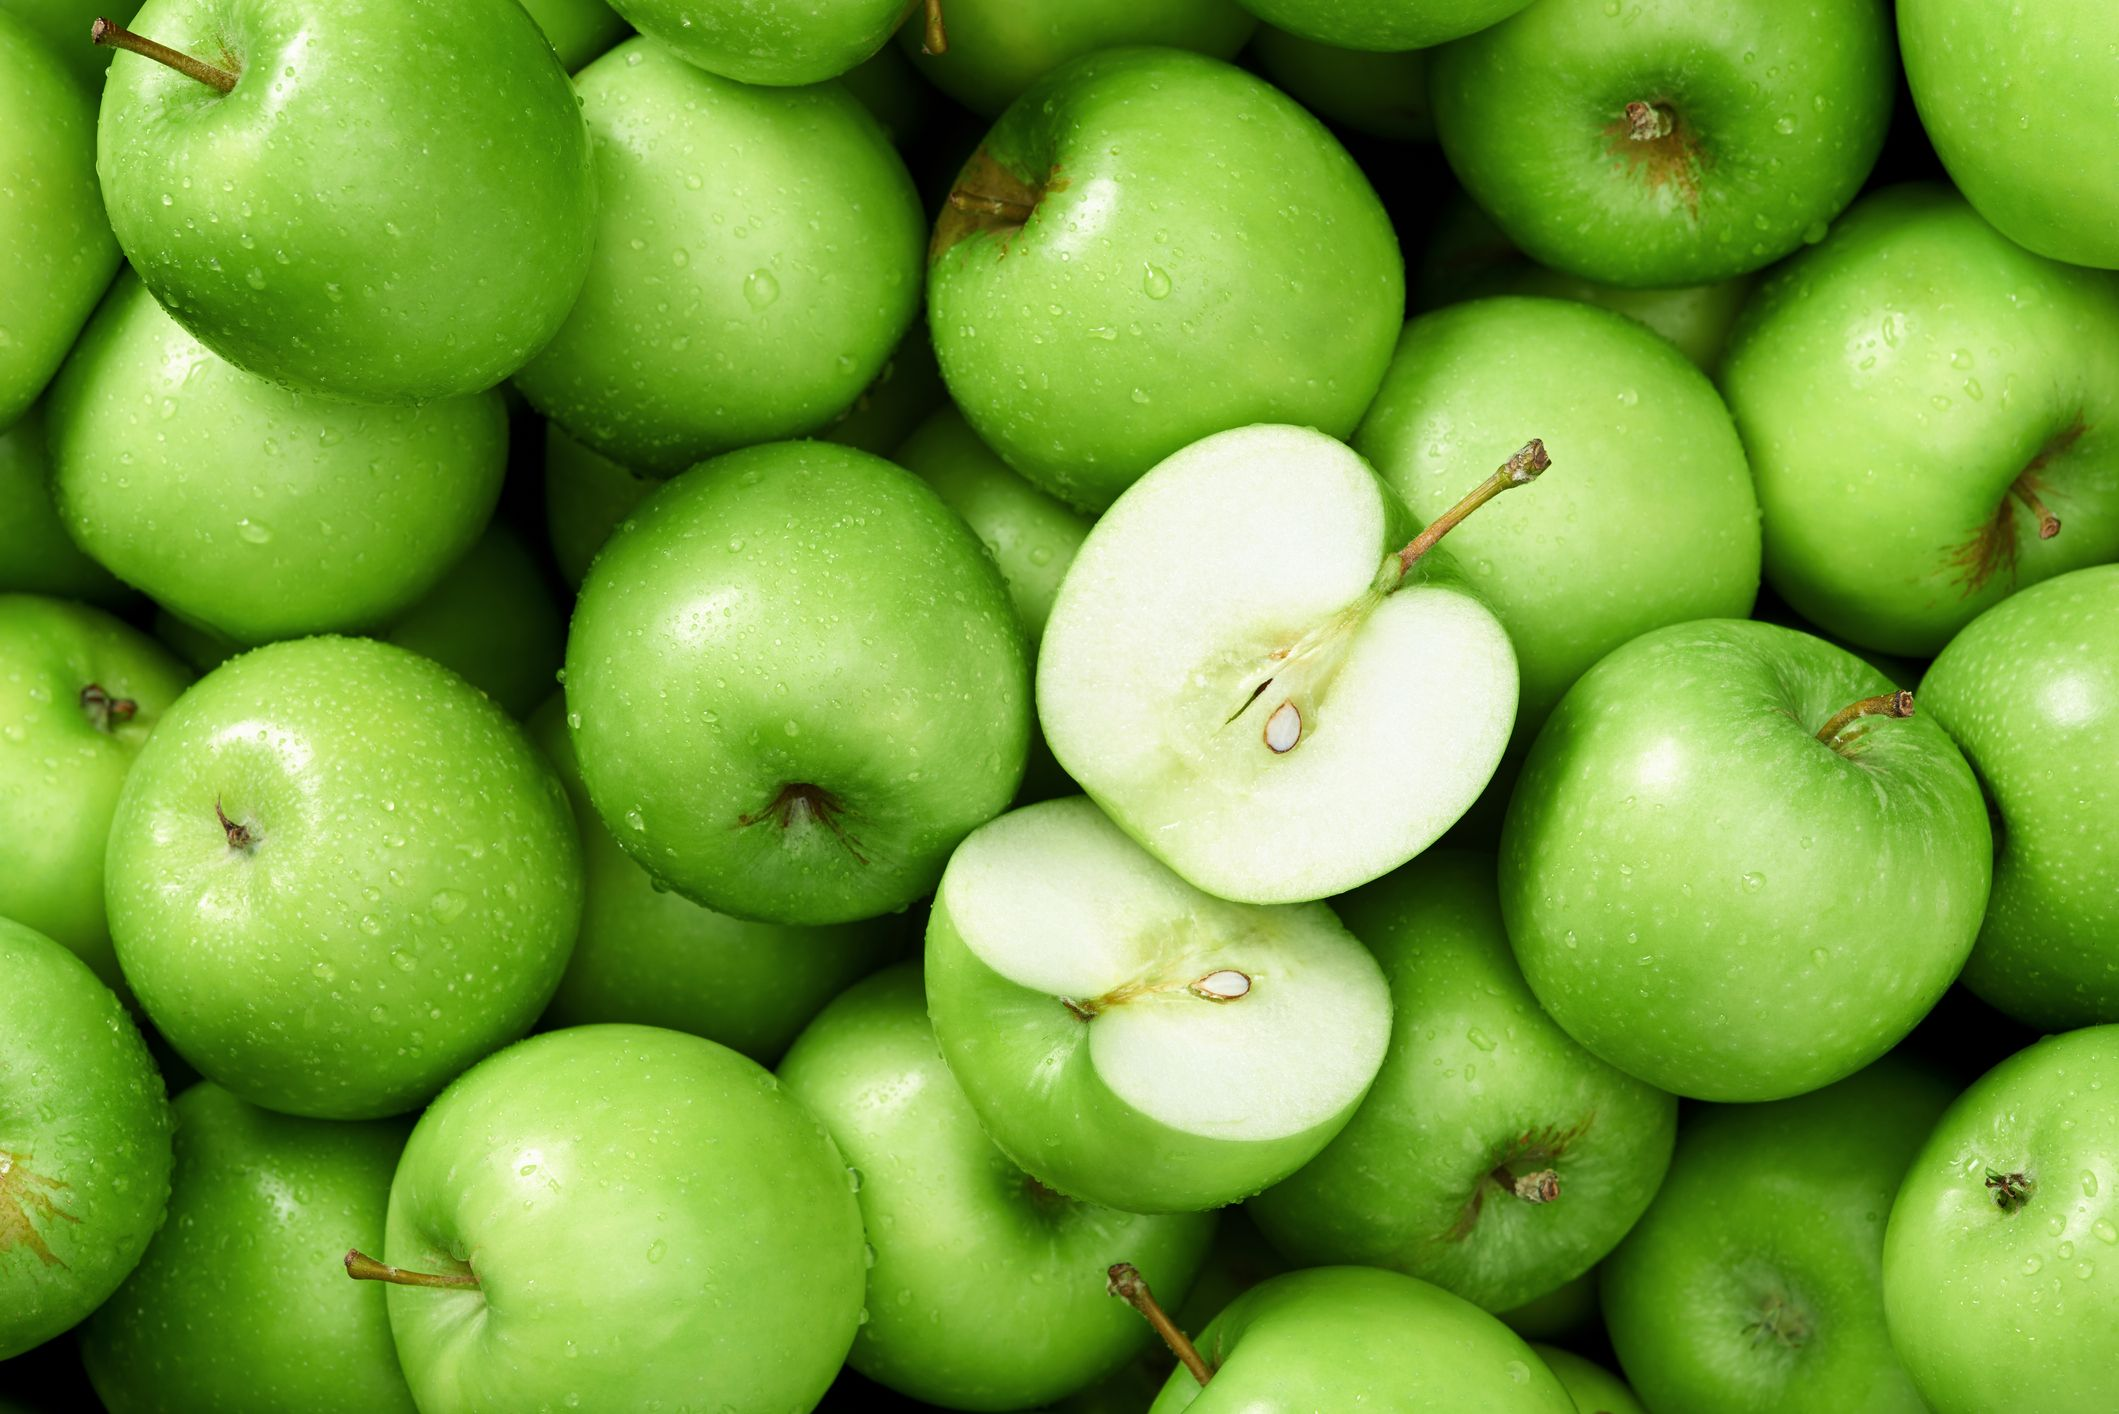 Are Apples Good for You? - Bacteria in Apples Study